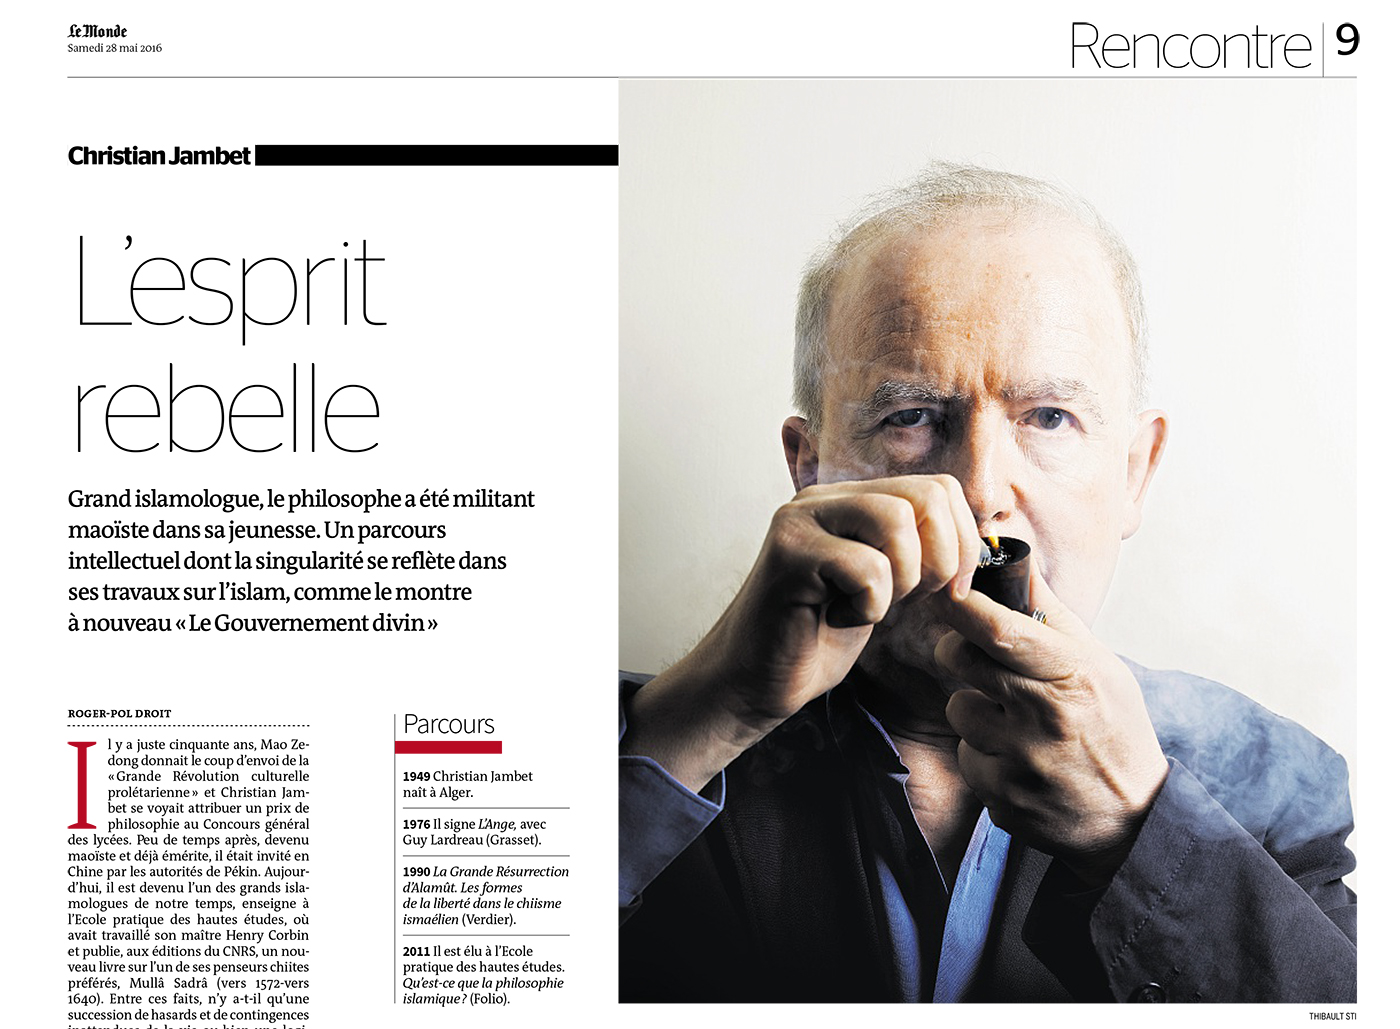 Thibault Stipal - Photographer - Christian Jambet - Le Monde - 1